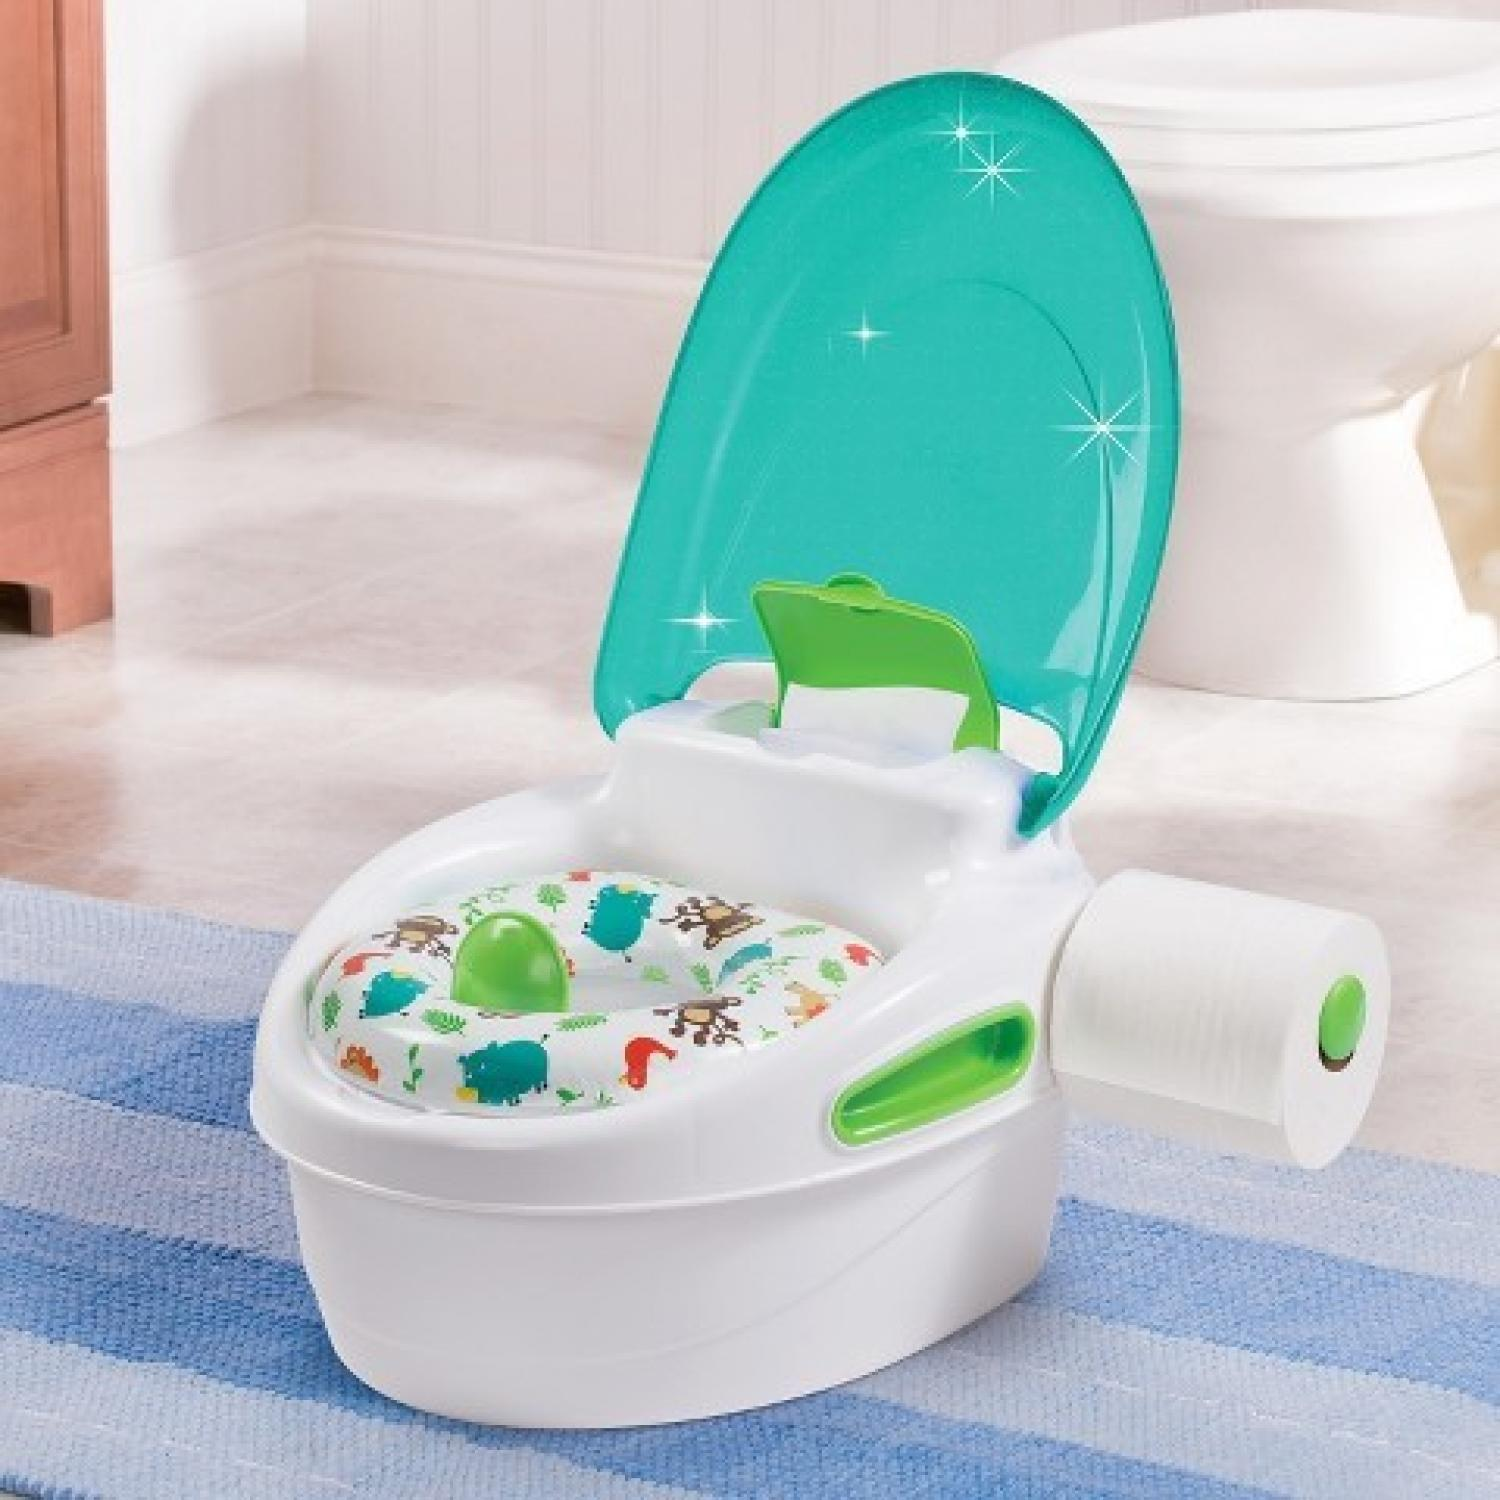 Best Potty Training Products | Parenting